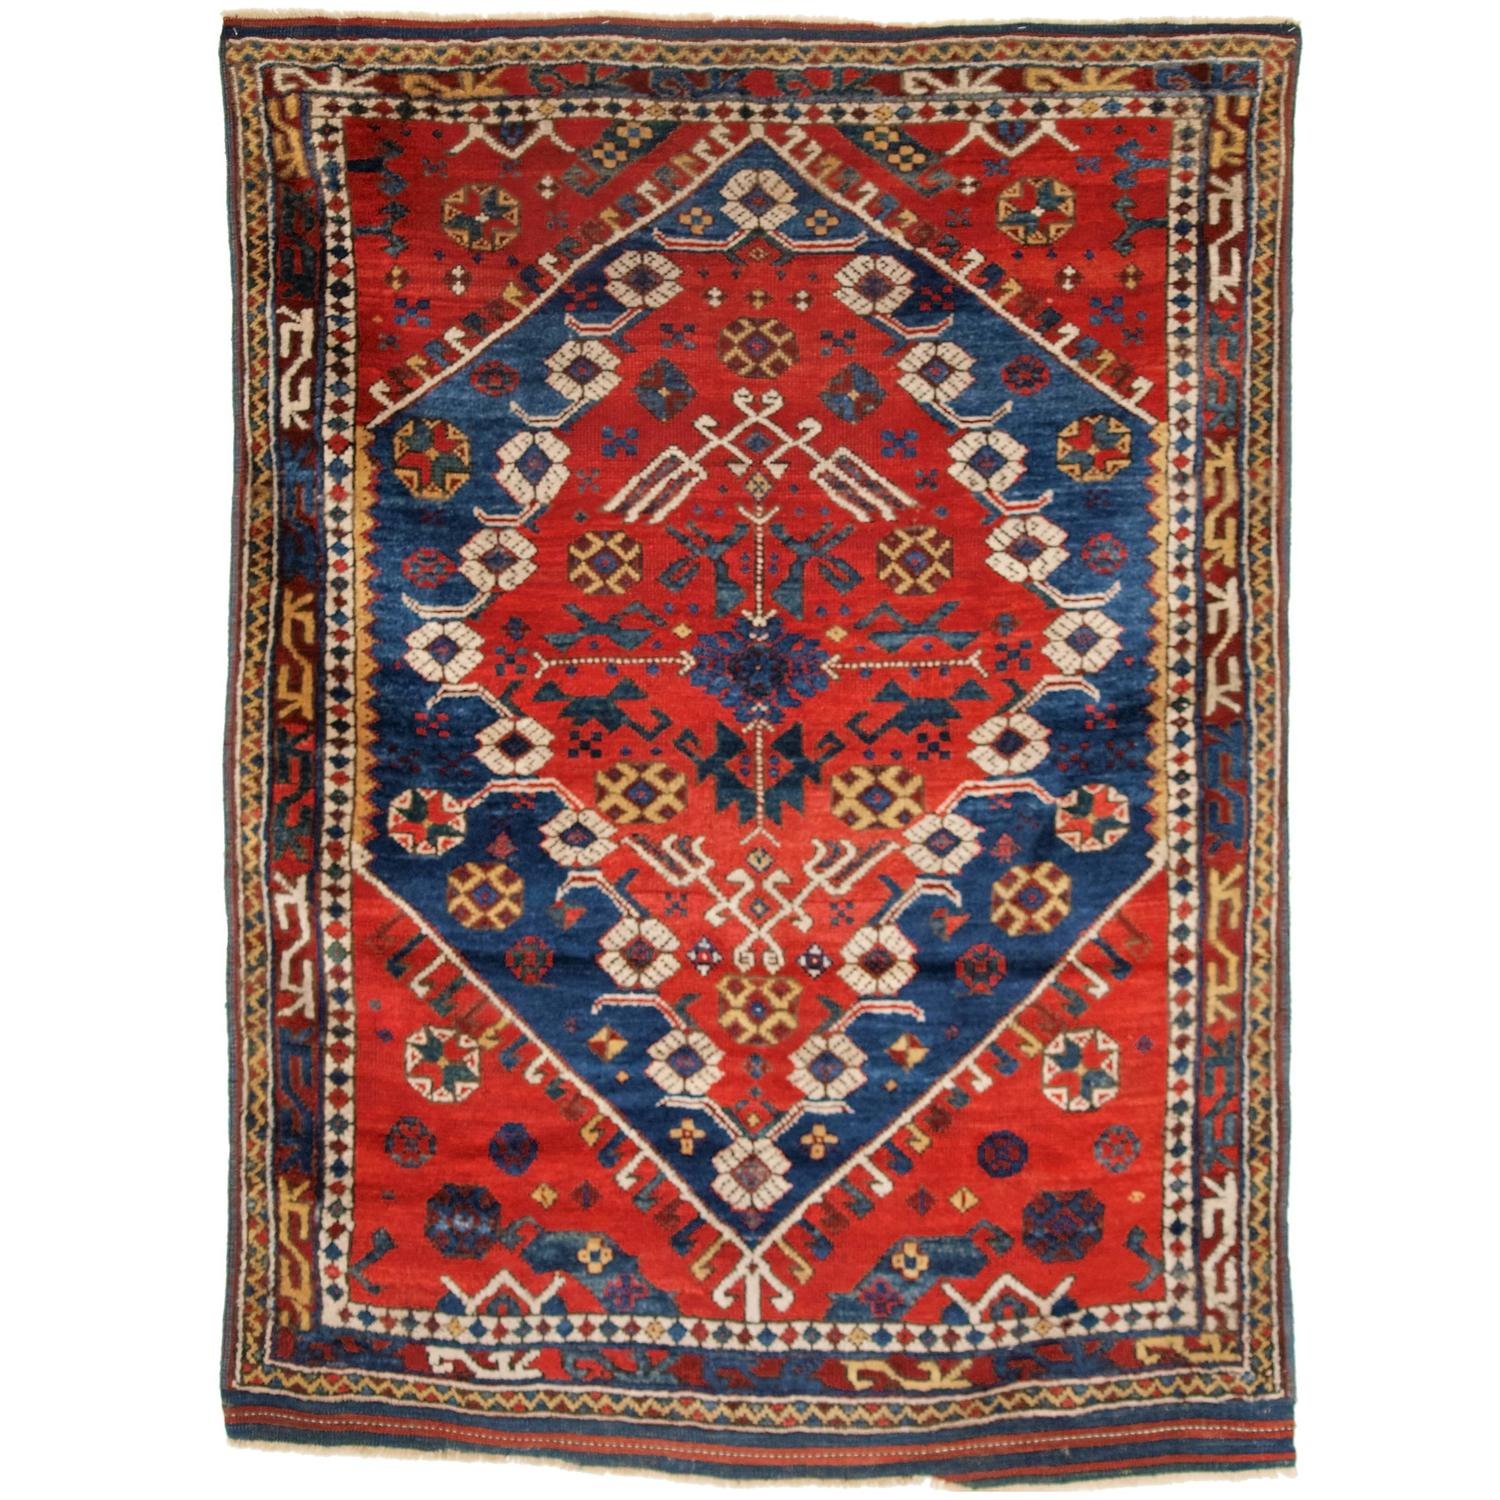 Antique Turkish Bergama Rug Of Classic Design With Superb Color Circa 1880 For Sale At 1stdibs